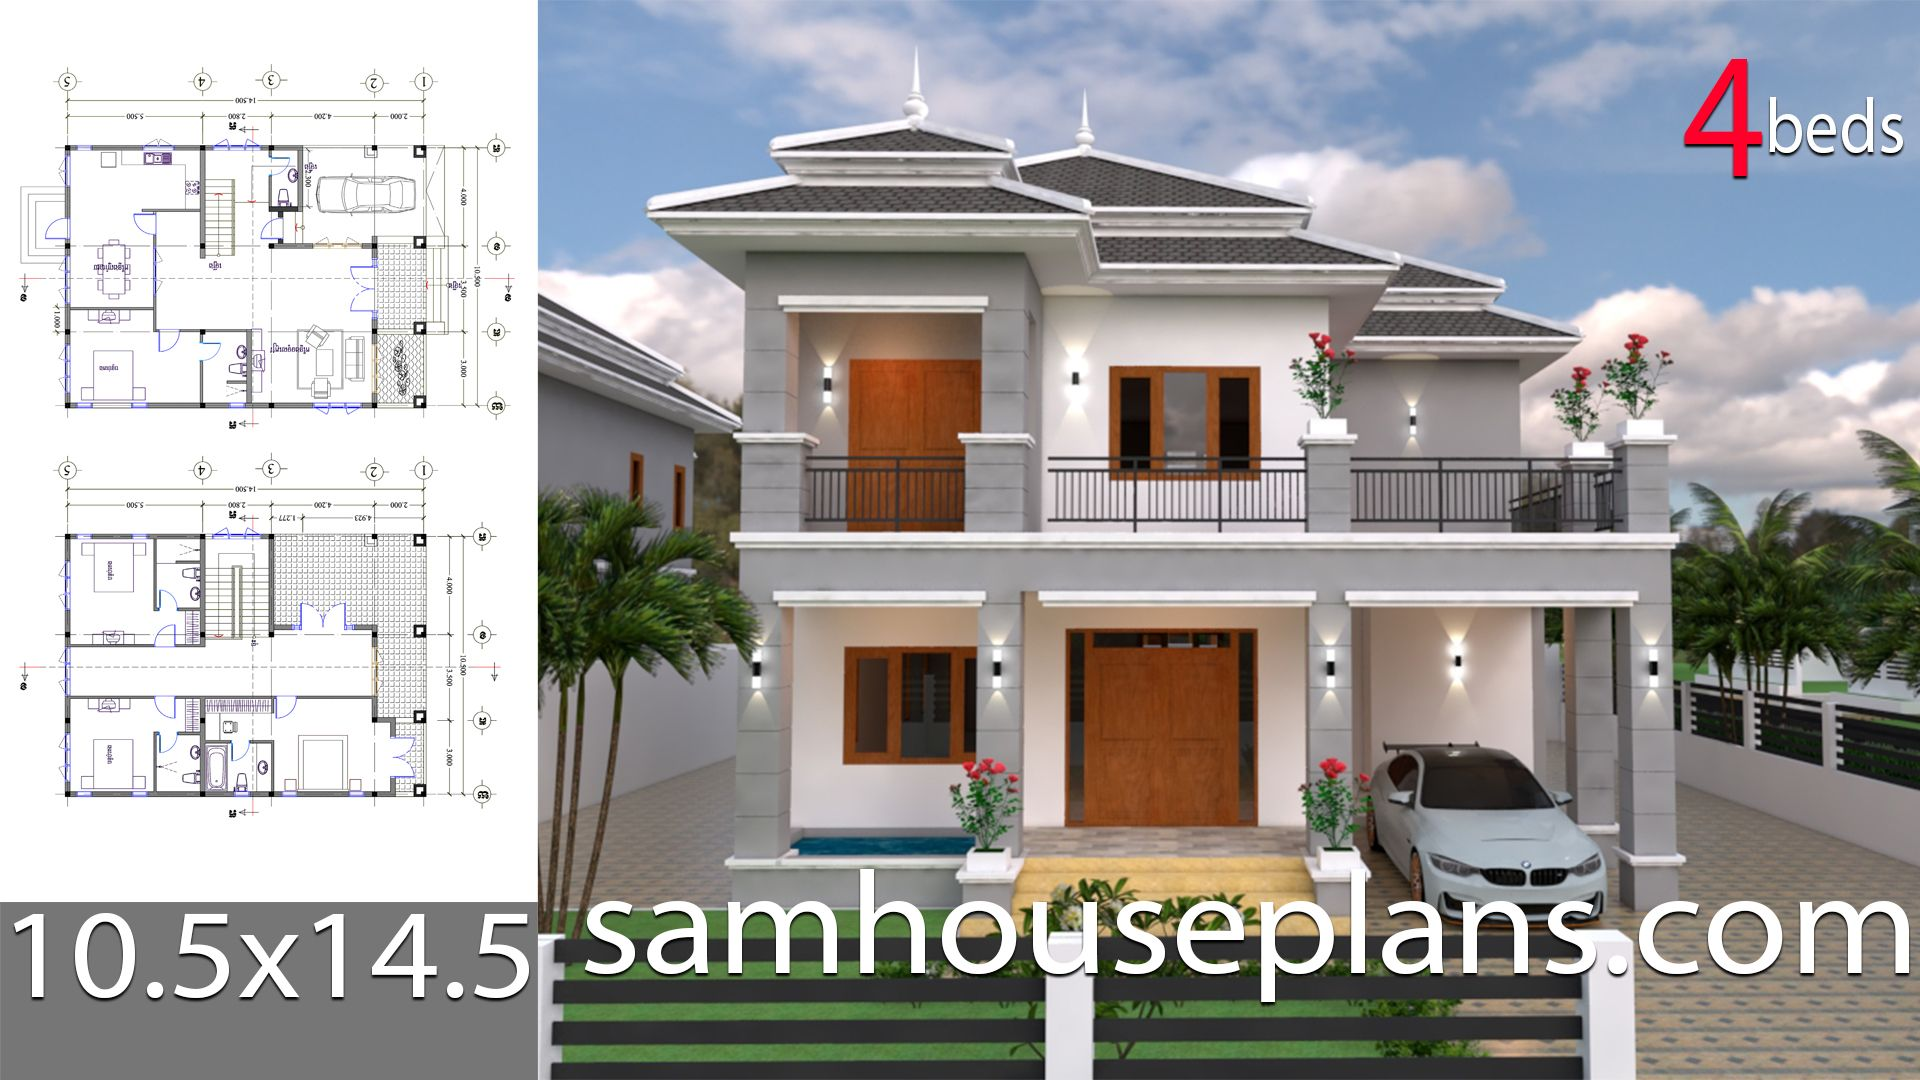 House Plans 10 5x14 5 With 4 Bedroomsthe House Has Car Parking And Garden Living Room Dining Roo In 2020 House Plans Small House Design Plans House Construction Plan